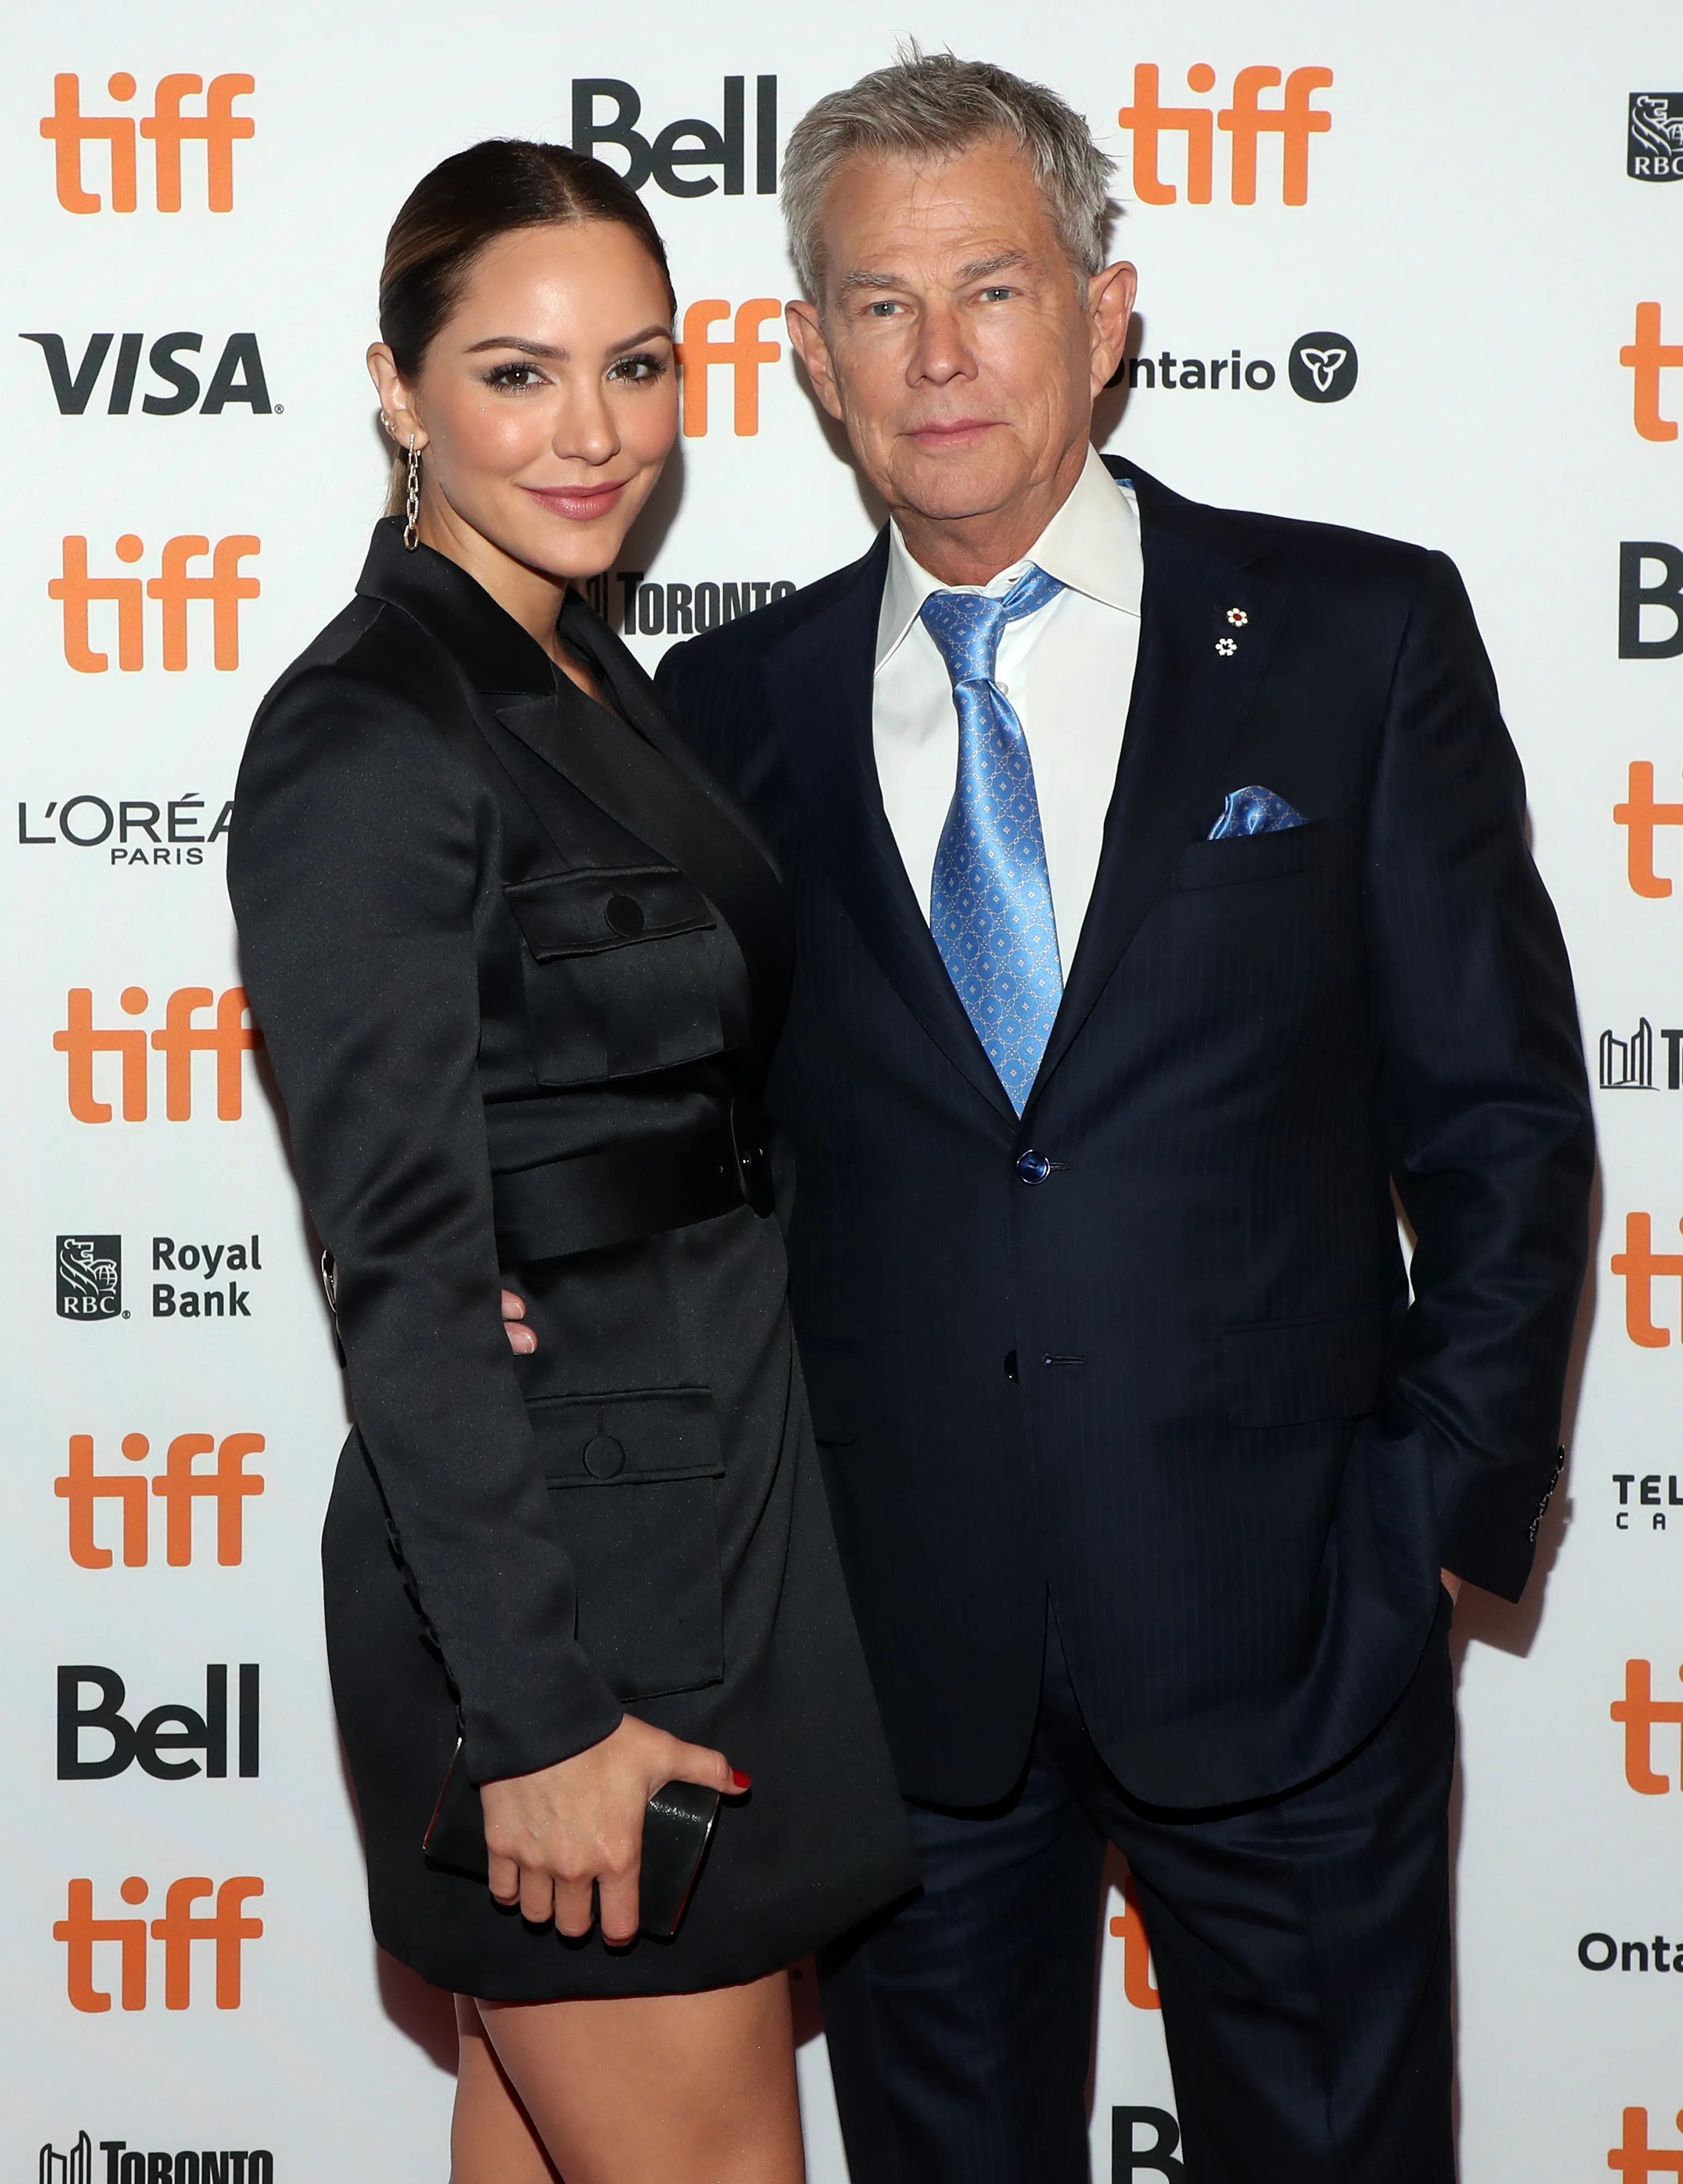 David Foster Katharine Mcphee S 35 Year Age Gap Won T Bring Us Down Digitalfyme Com